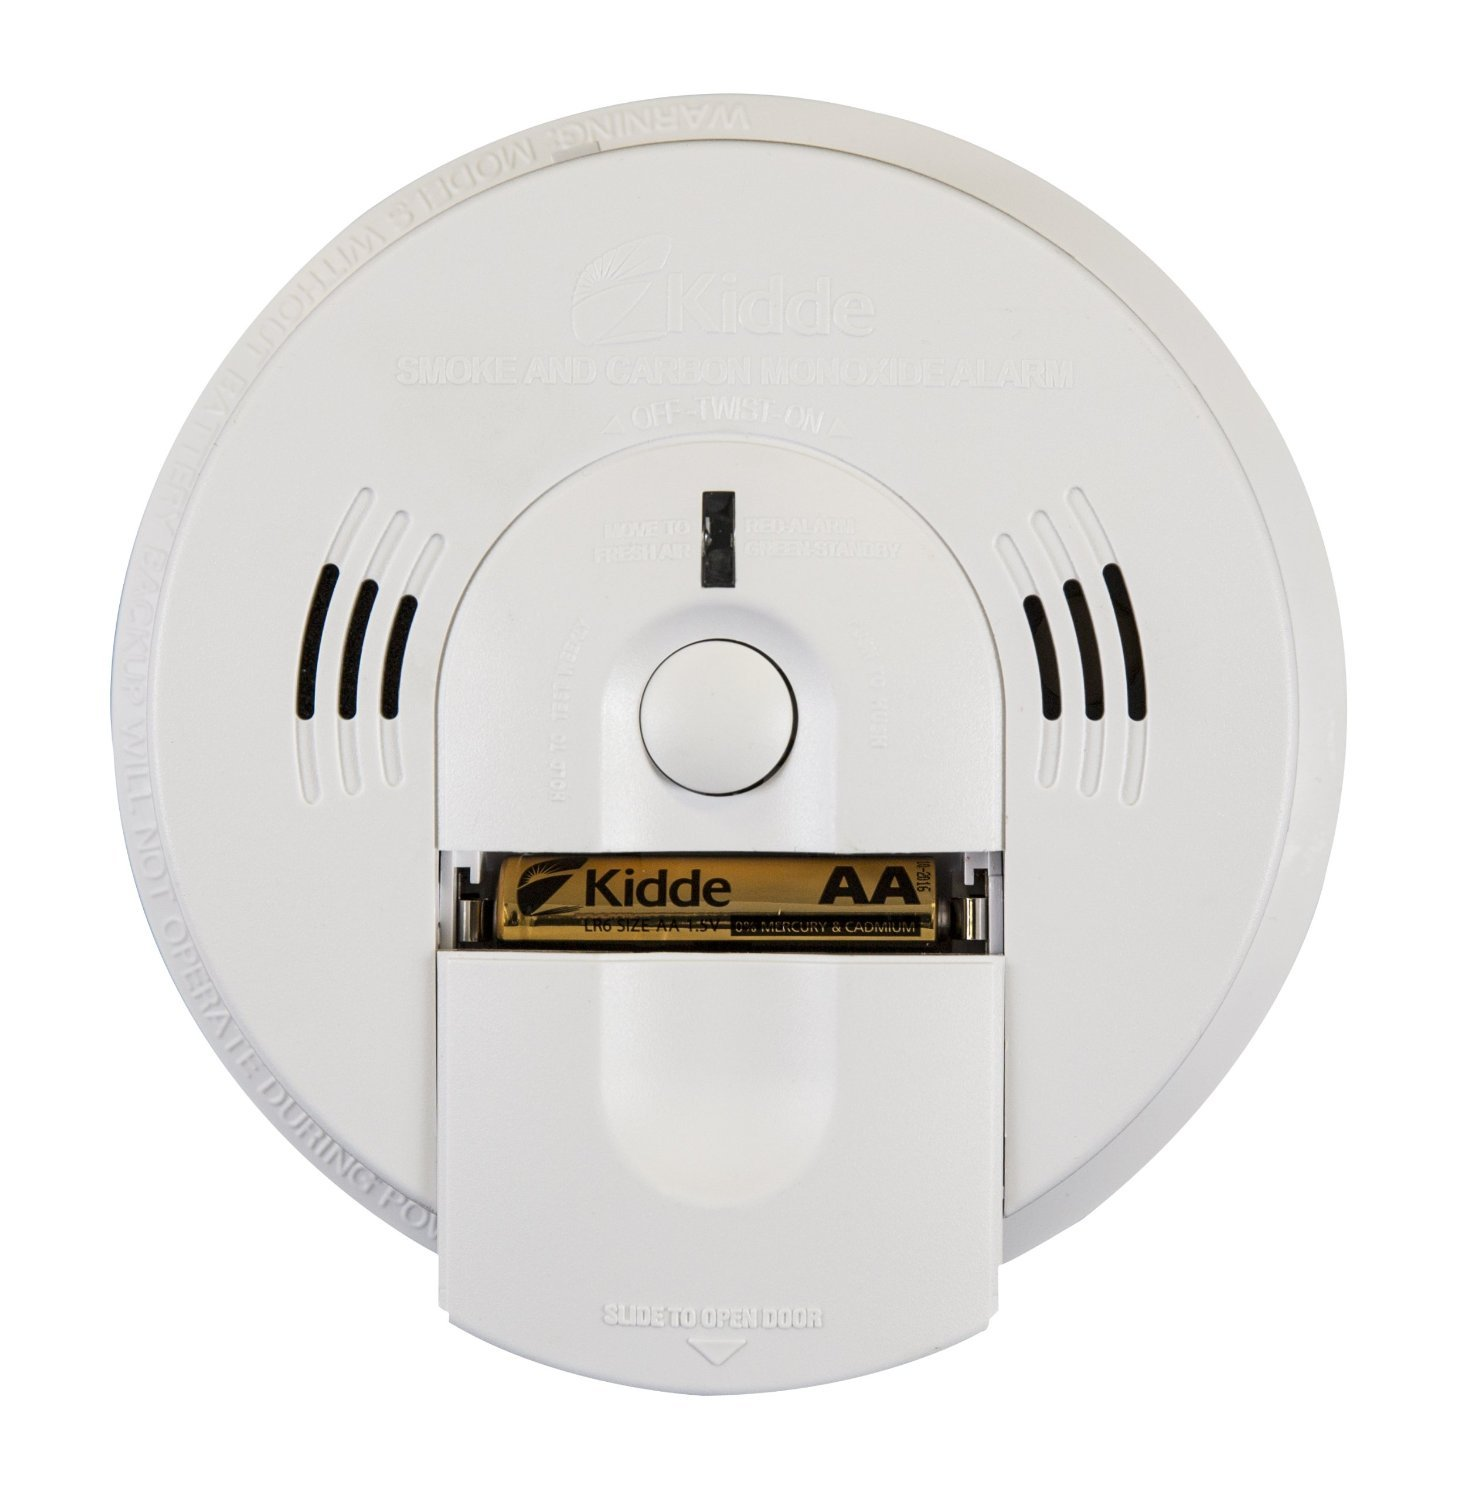 Kidde KN-COSM-IBA Hardwire Combination Smoke/Carbon Monoxide Alarm with Battery Backup and Voice Warning, Interconnectable (6 Pack) by Kidde